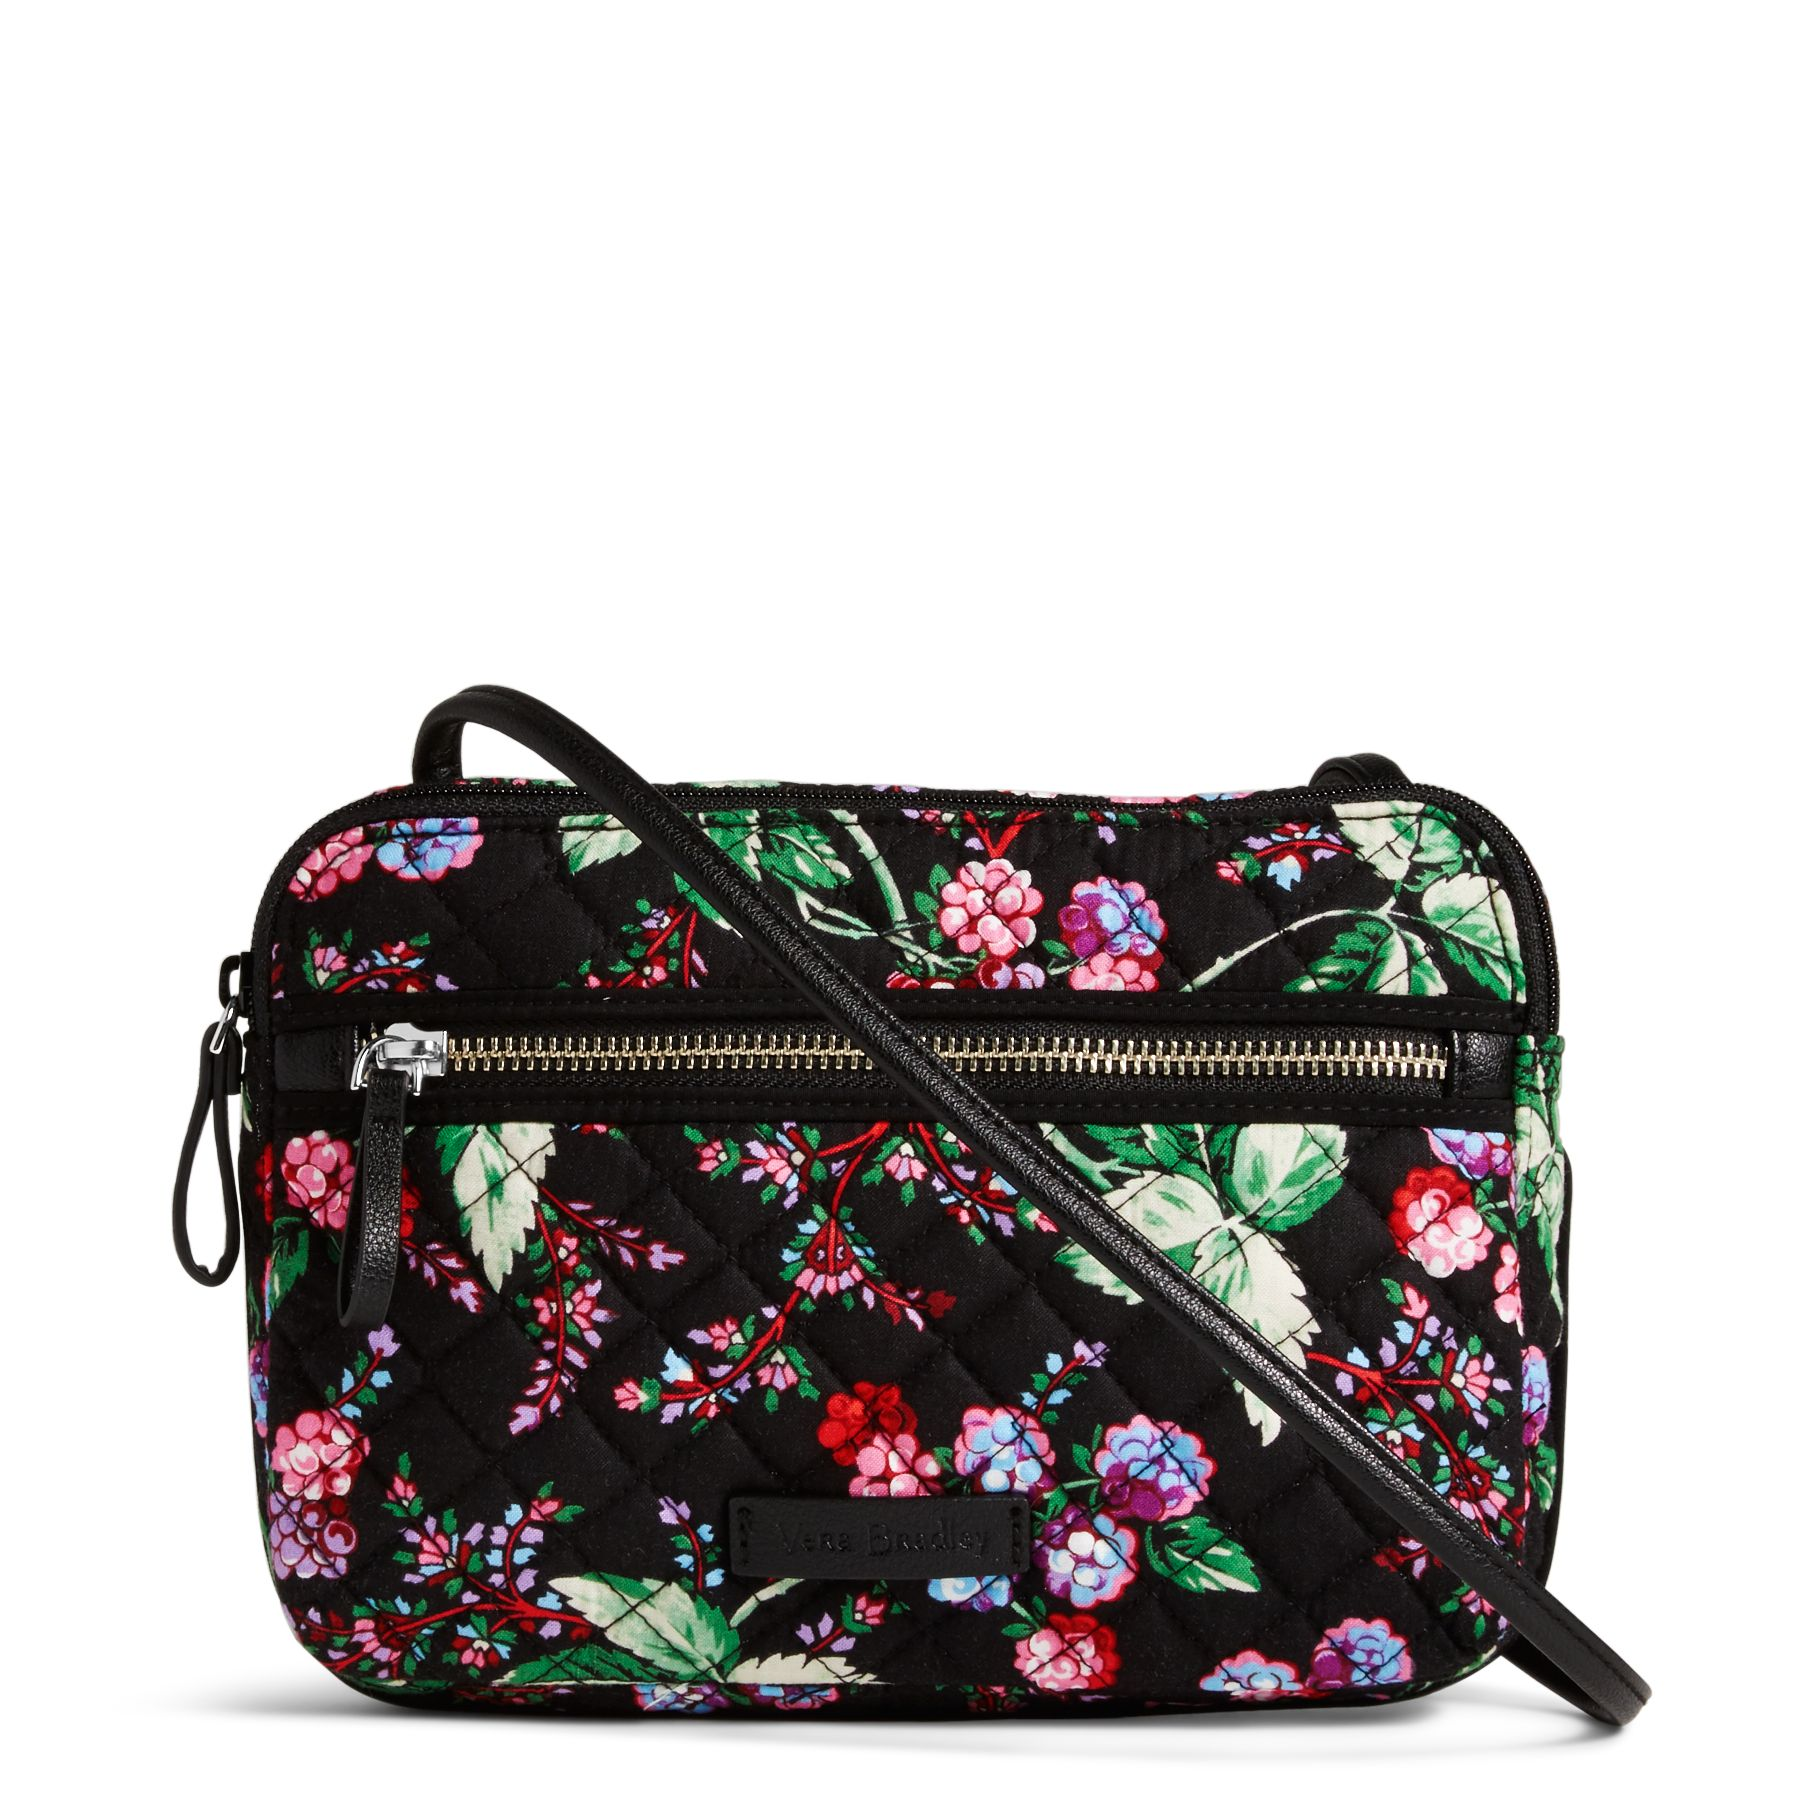 Get free shipping on all orders right now at Vera Bradley. That means you  can pick up great bags like this Vera Bradley Iconic RFID Little Crossbody  in ... 2881c316402ce